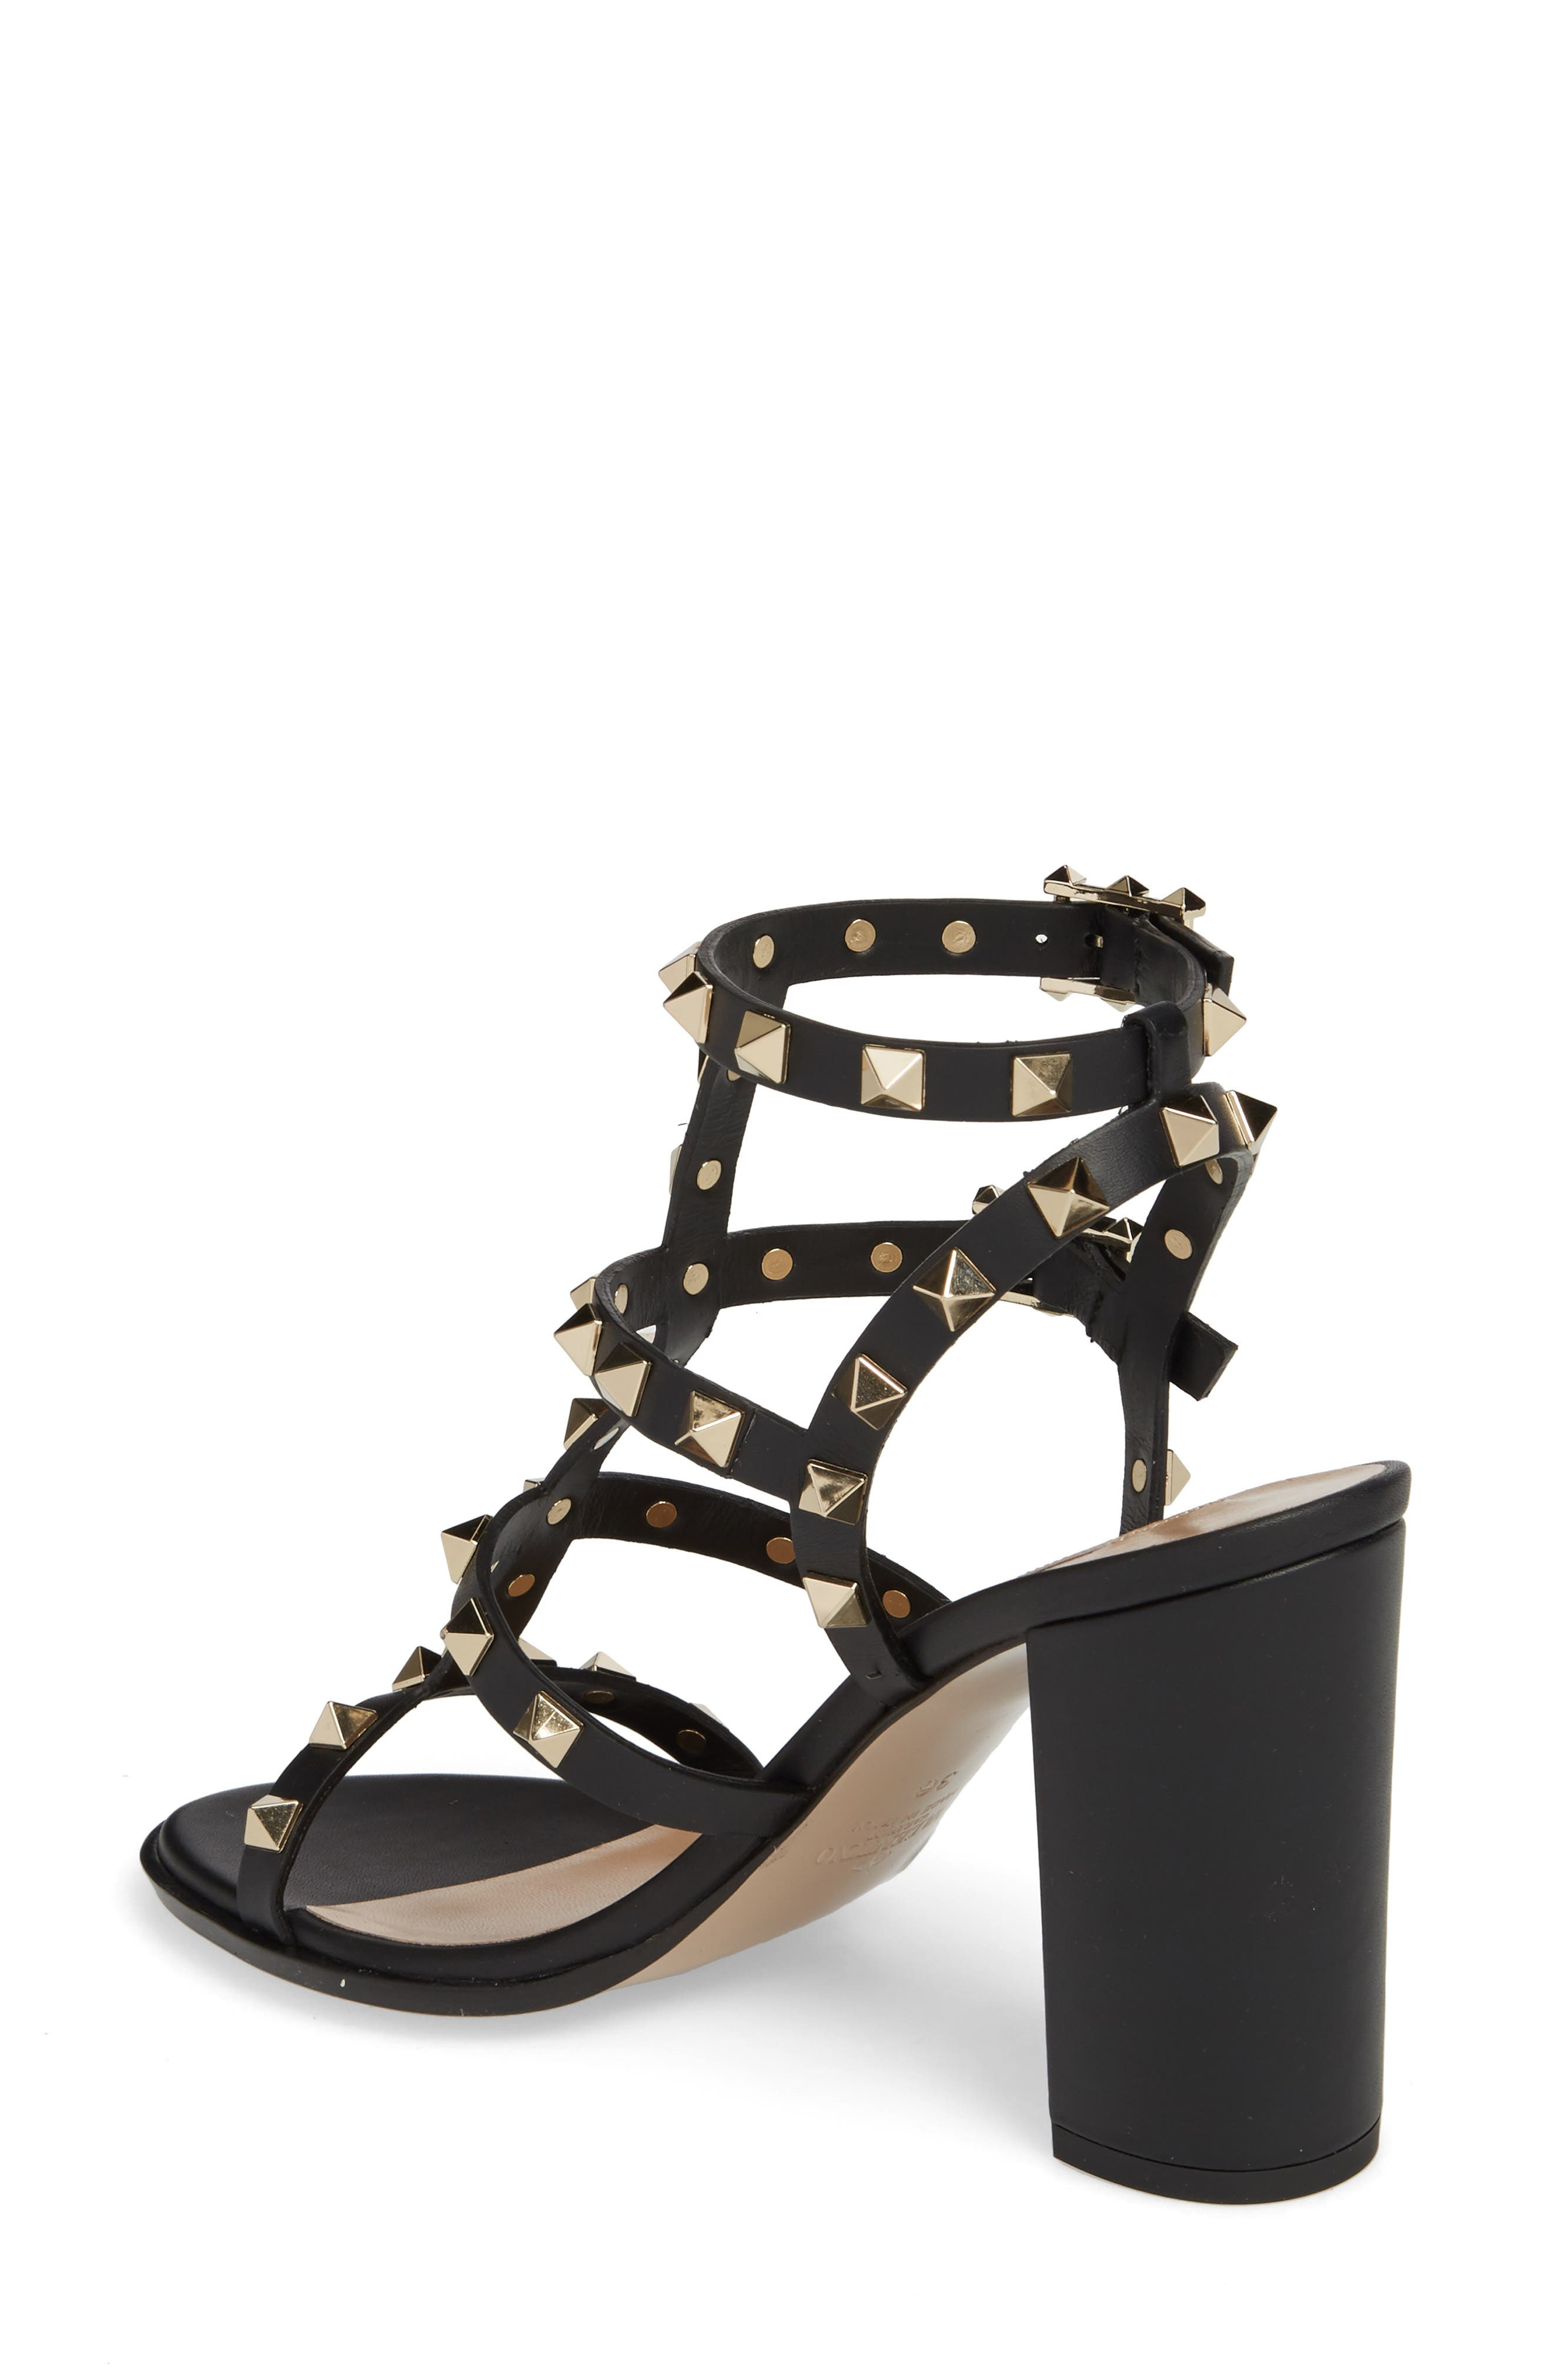 'Rockstud' T-Strap Sandal,                             Alternate thumbnail 2, color,                             Nero